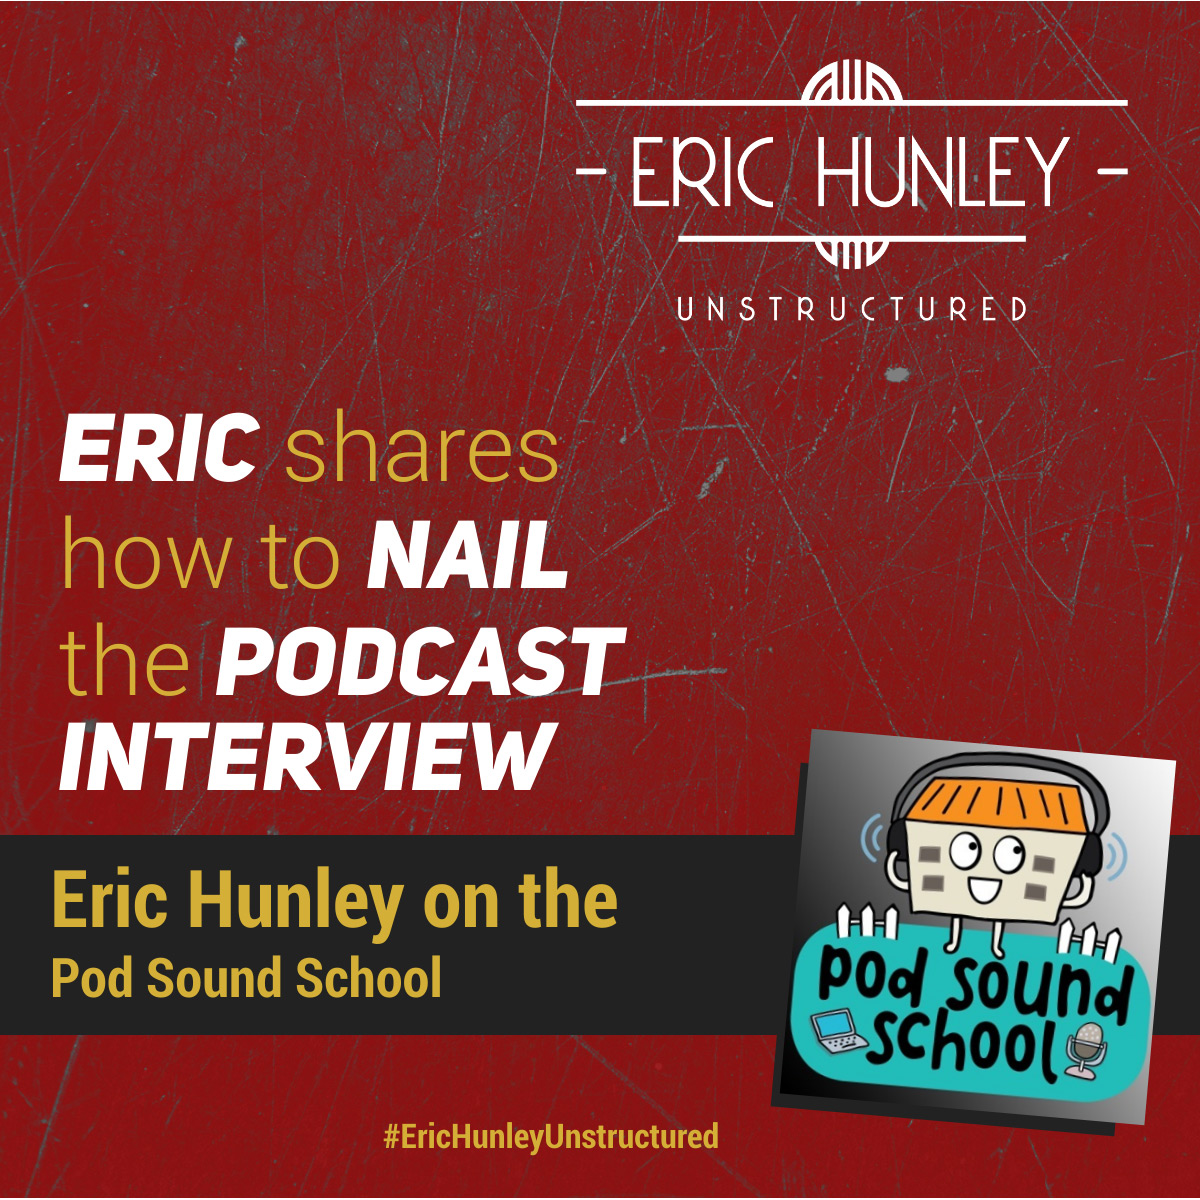 Eric Hunley Podcast Appearance Interviews - Pod Sound School Square Post